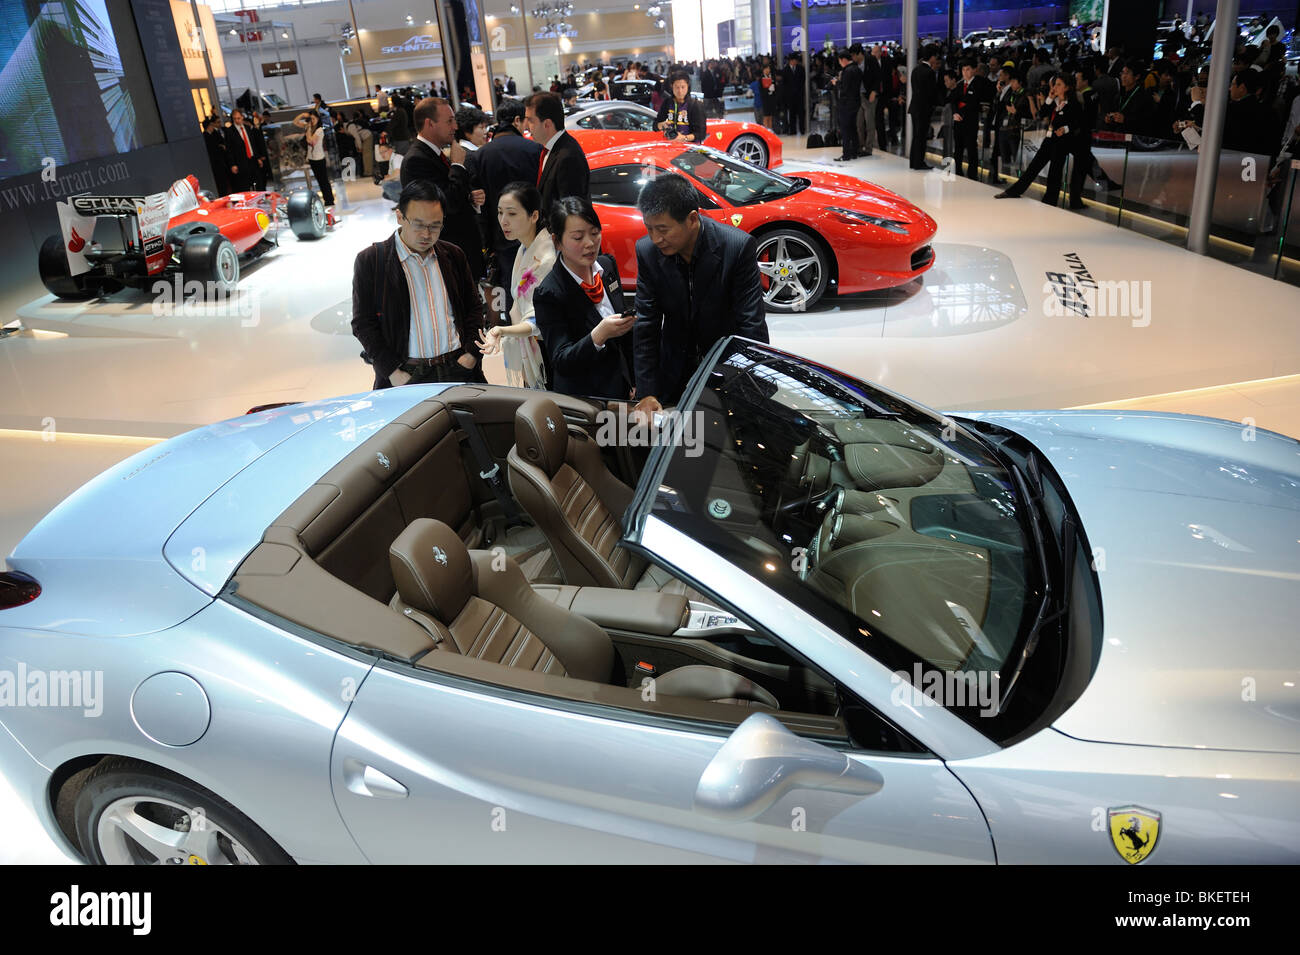 Potential buyers at Ferrari stand during the Beijing Auto Show. 23-Apr-2010 - Stock Image